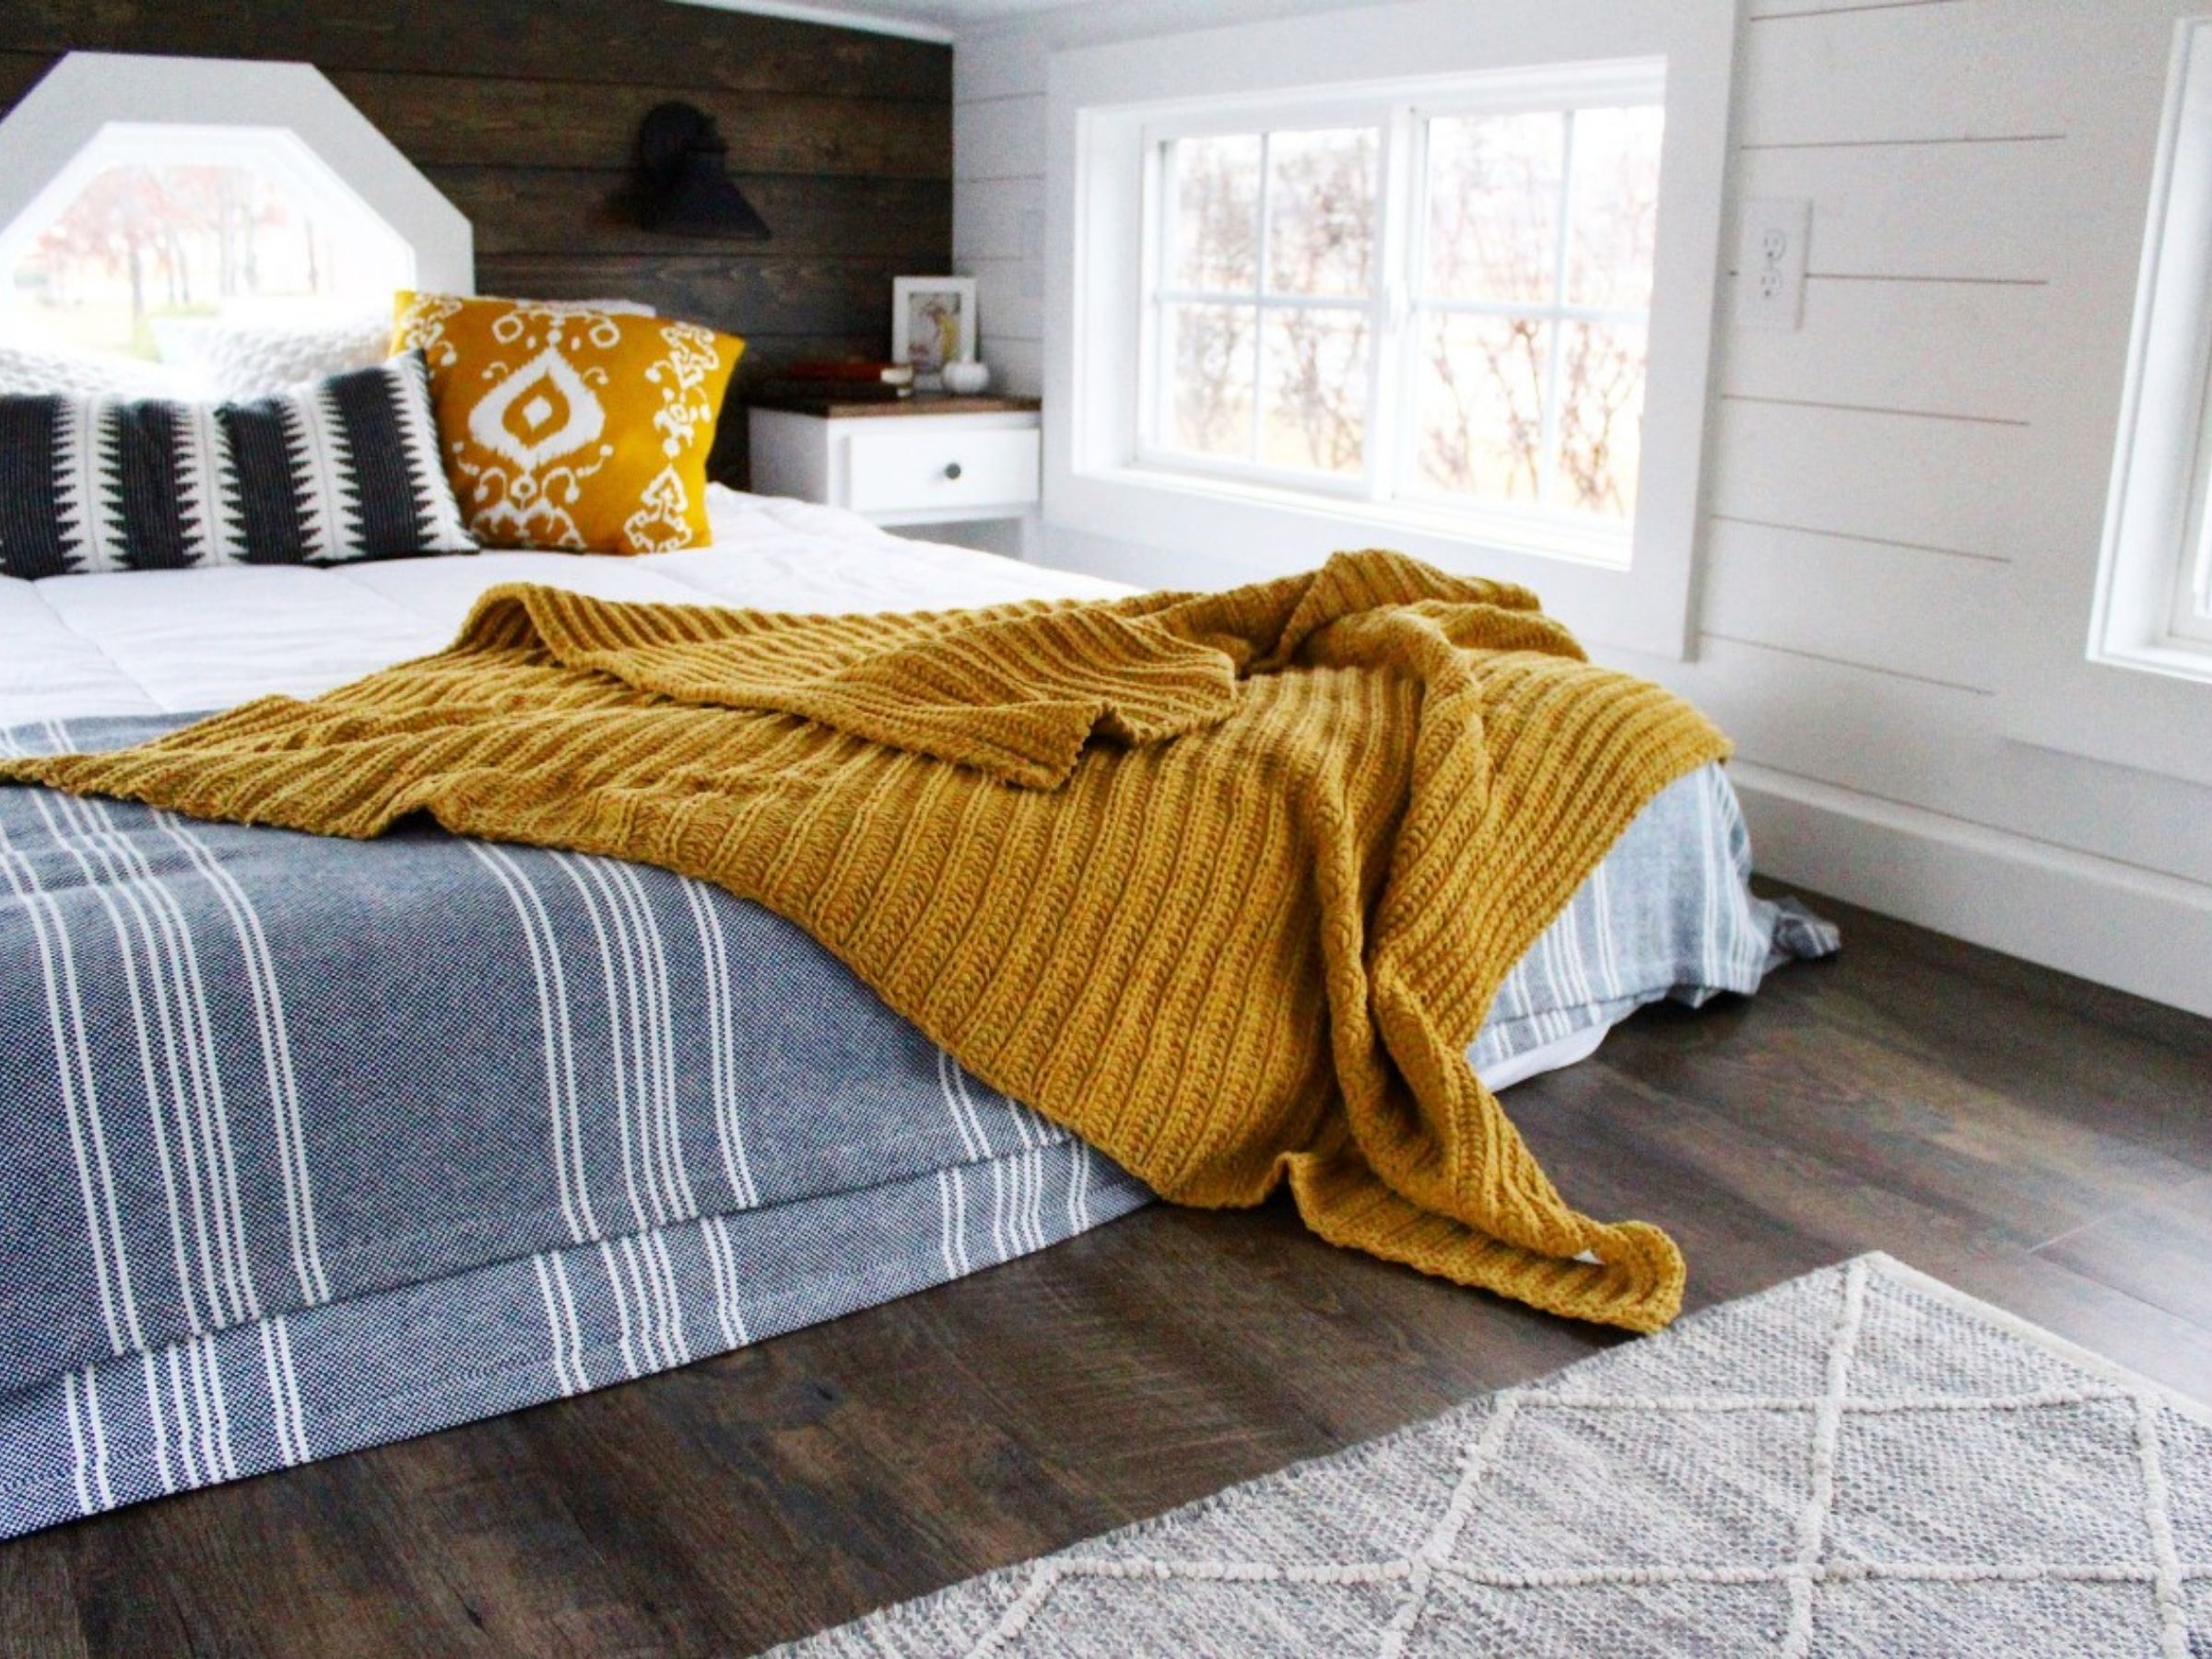 Mattress in loft against wood wall with blue striped blanket